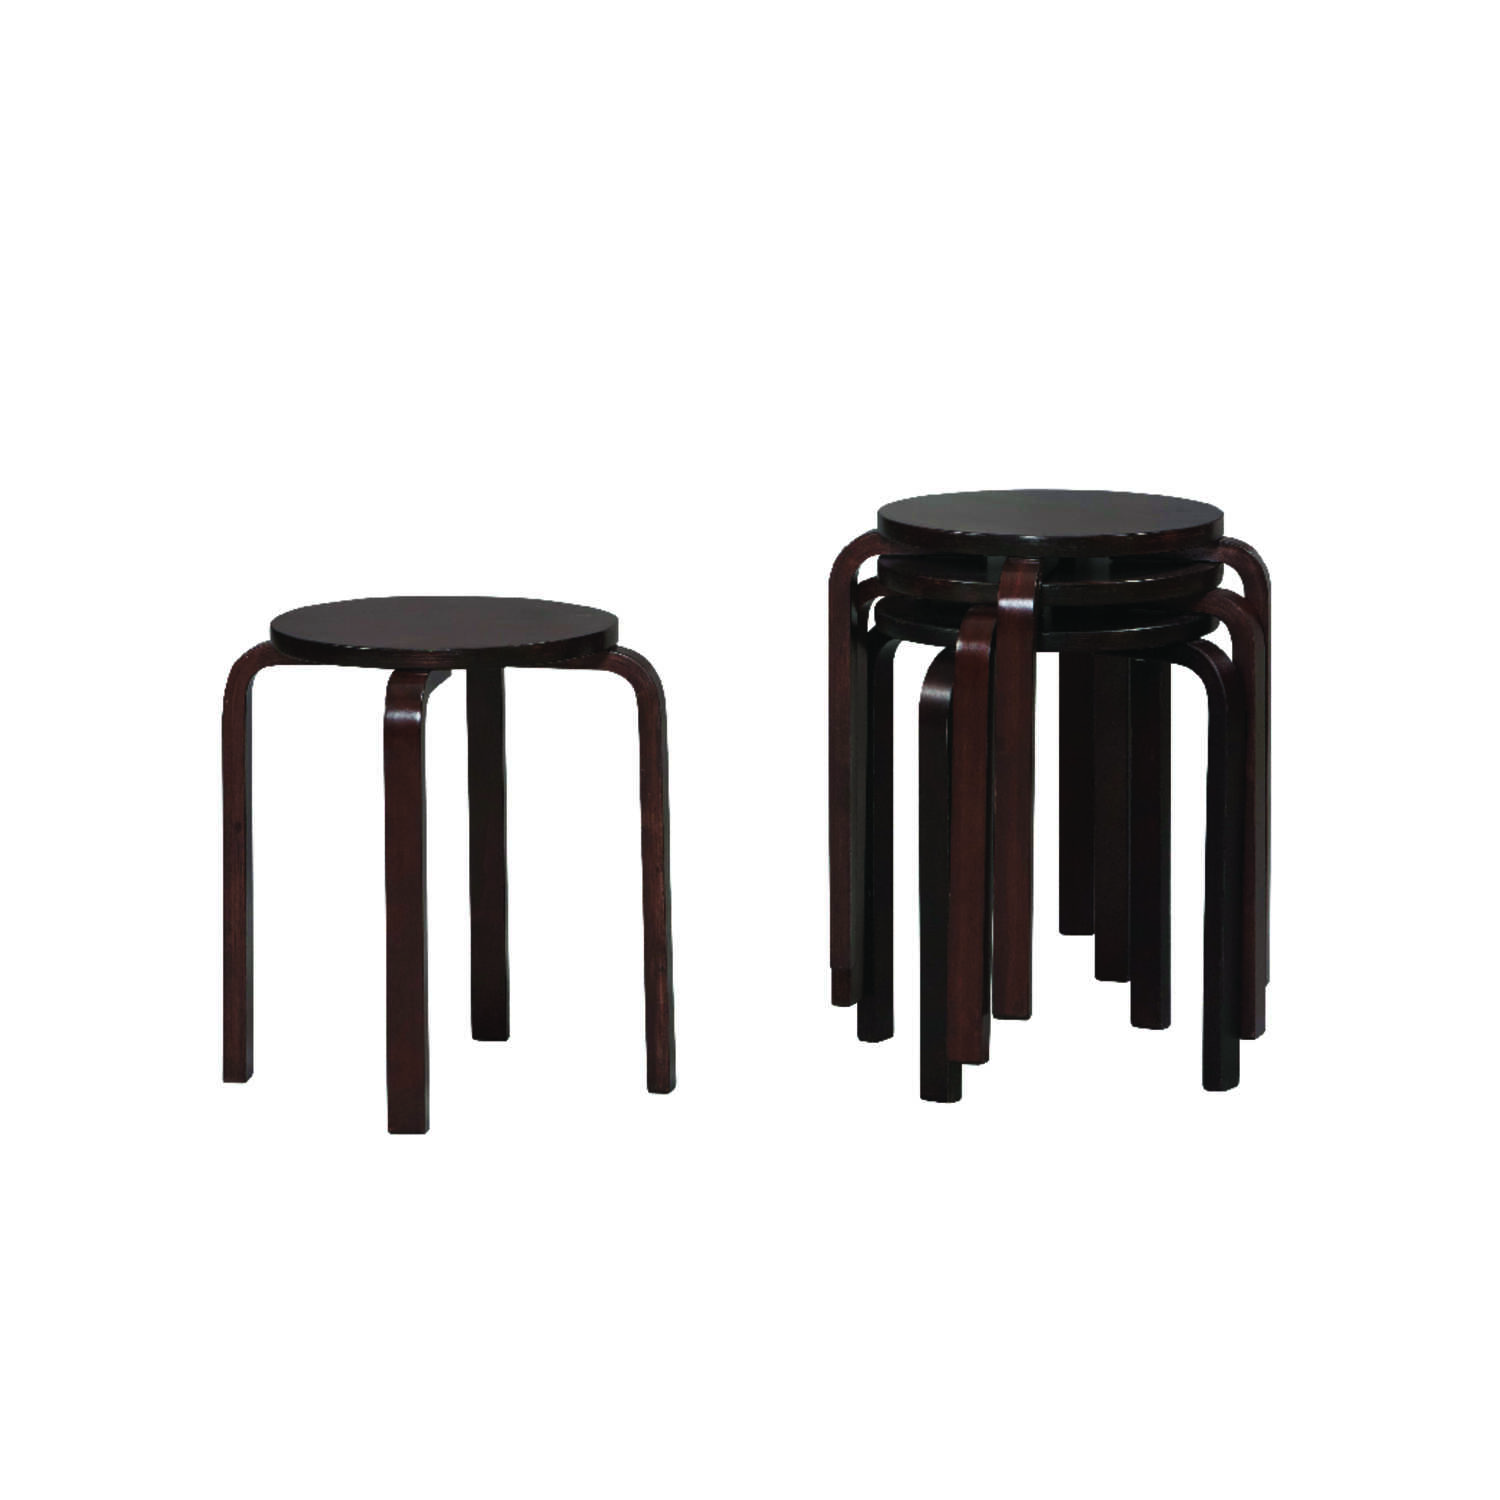 Linon Home Decor  Dark Brown  Contemporary  Bentwood Stool  Wood